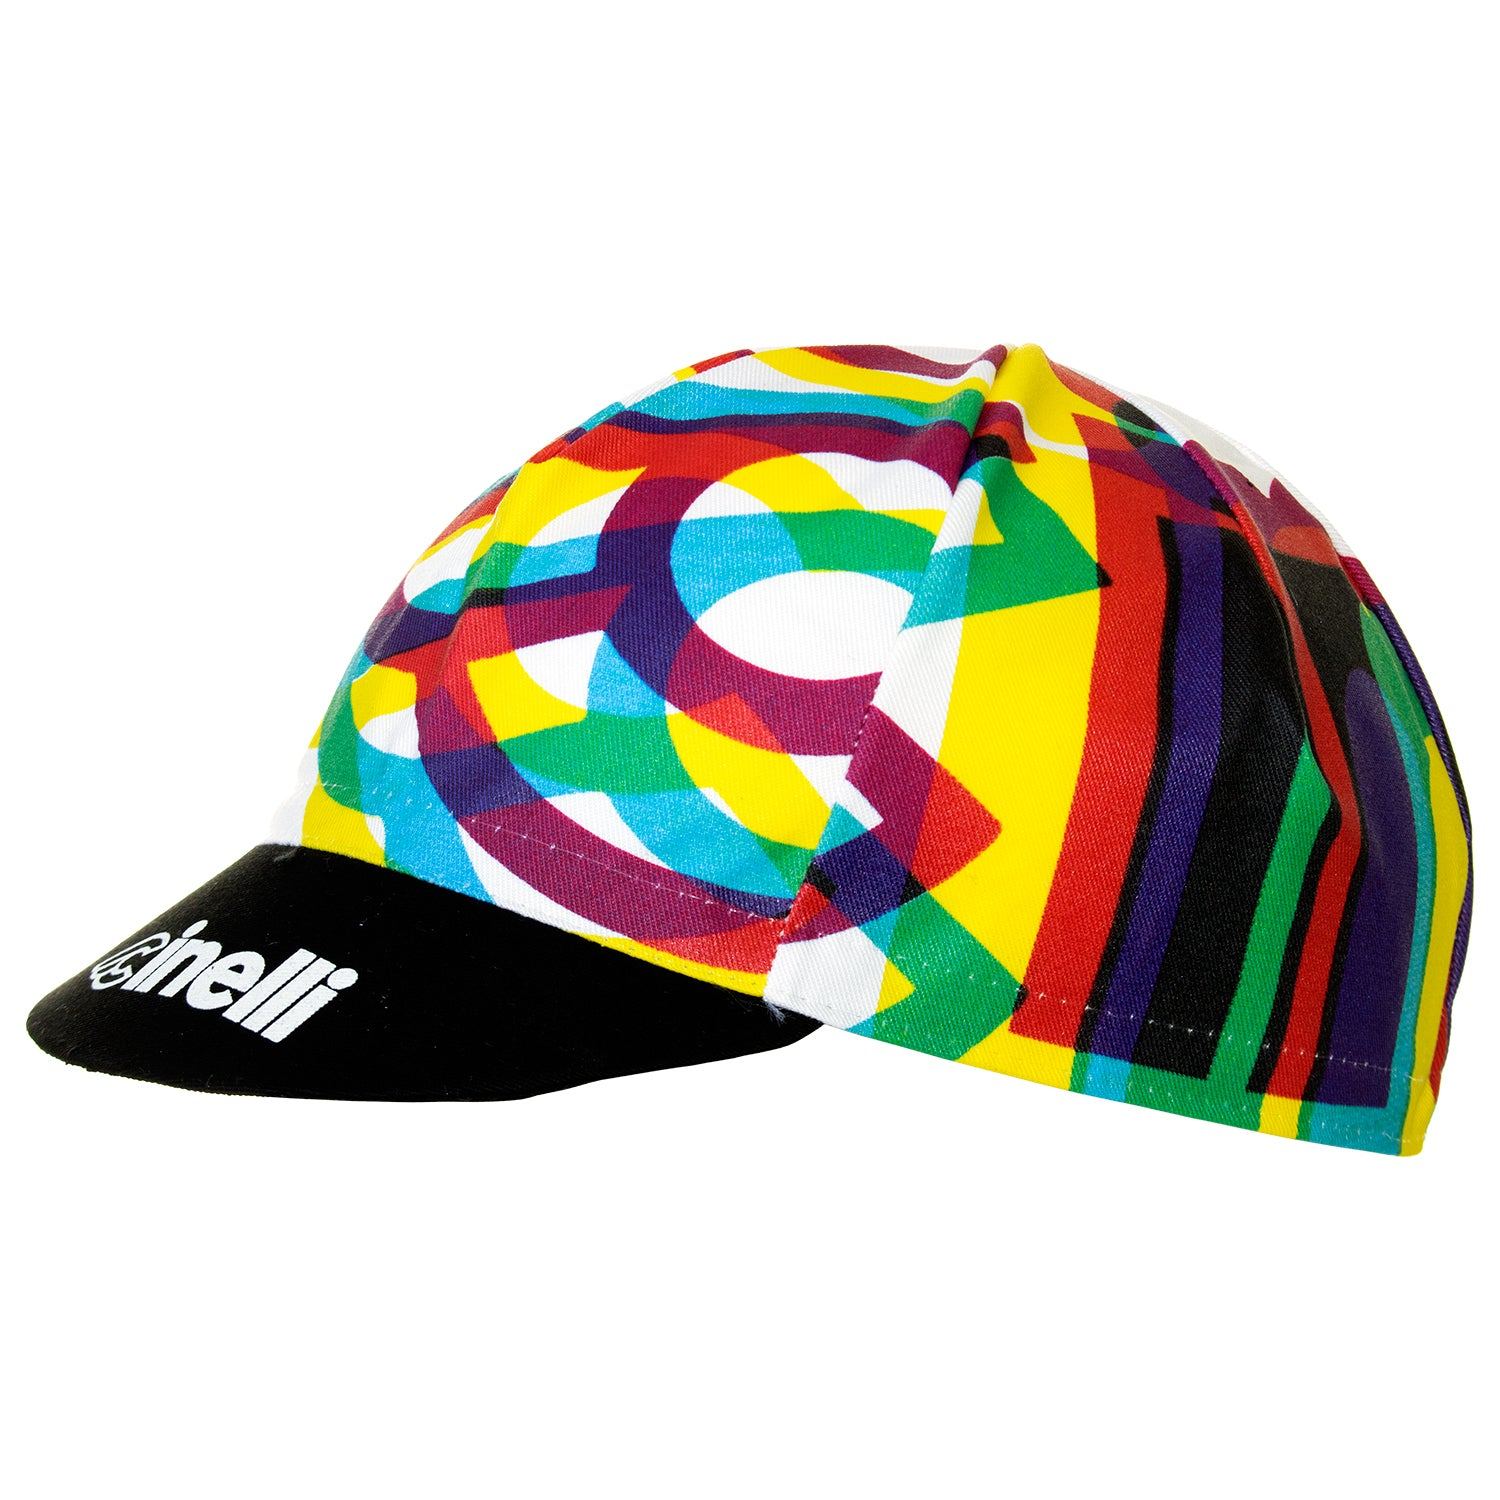 Cinelli Caleido Cotton Cycling Cap